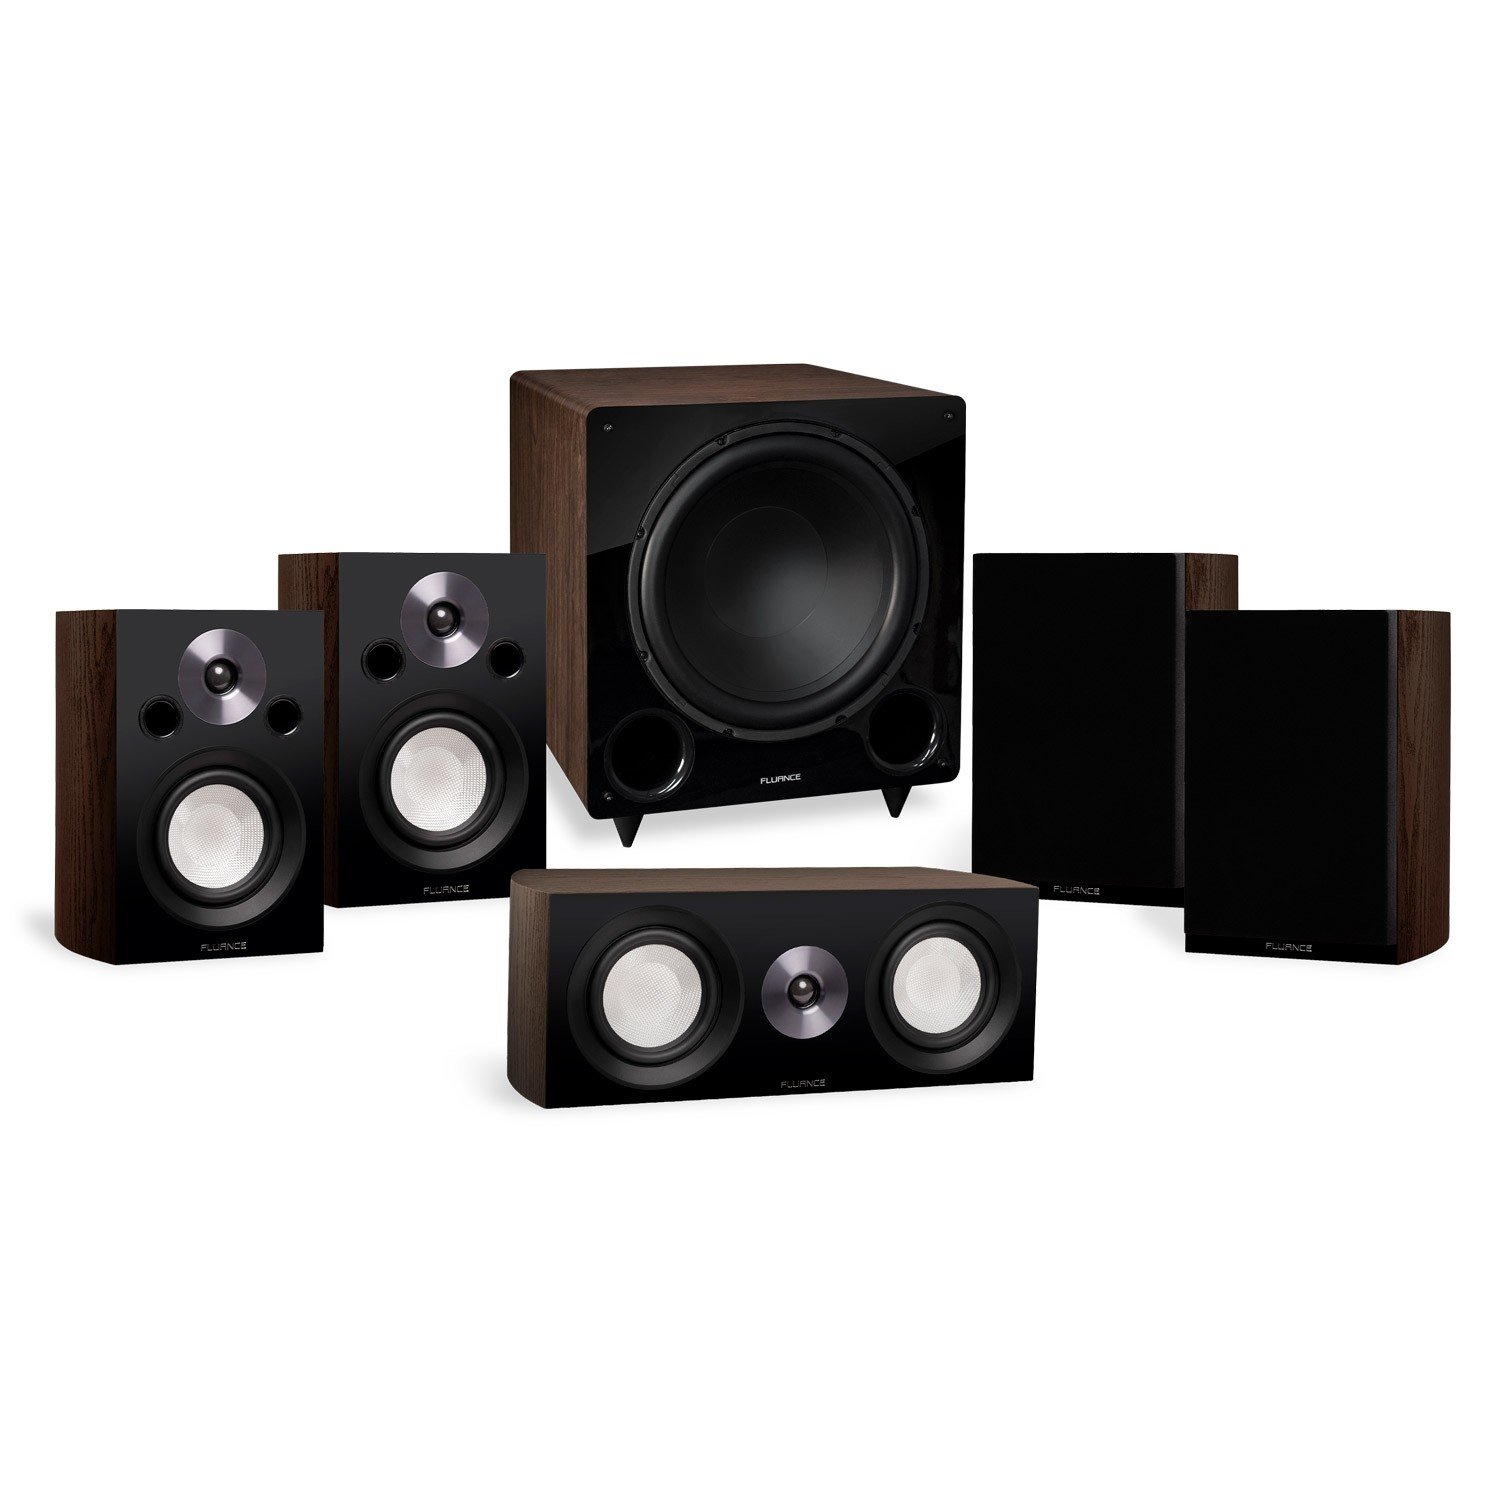 Reference Compact Surround Sound Home Theater 5.1 Channel Speaker System with DB12 Subwoofer